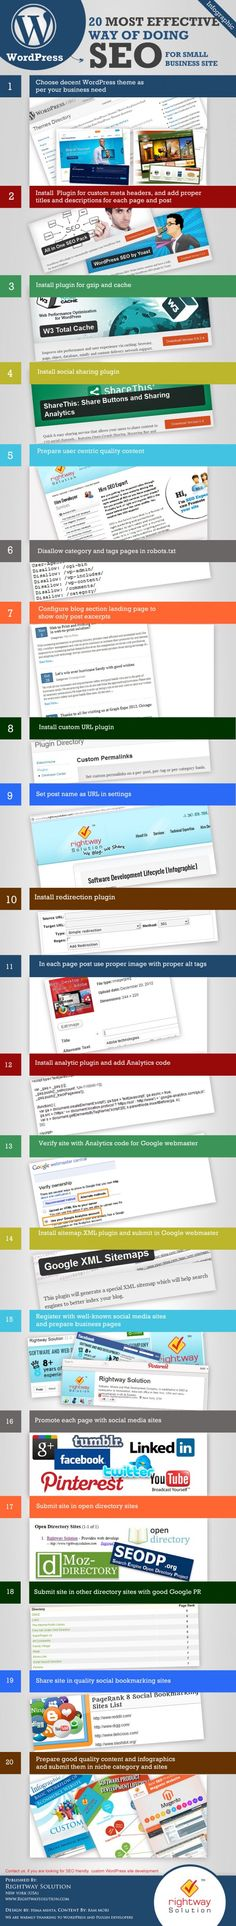 Wordpress - 20 Most Effective Way(s) Of Doing SEO For Small Business Site(s) #infographic #SEO #in